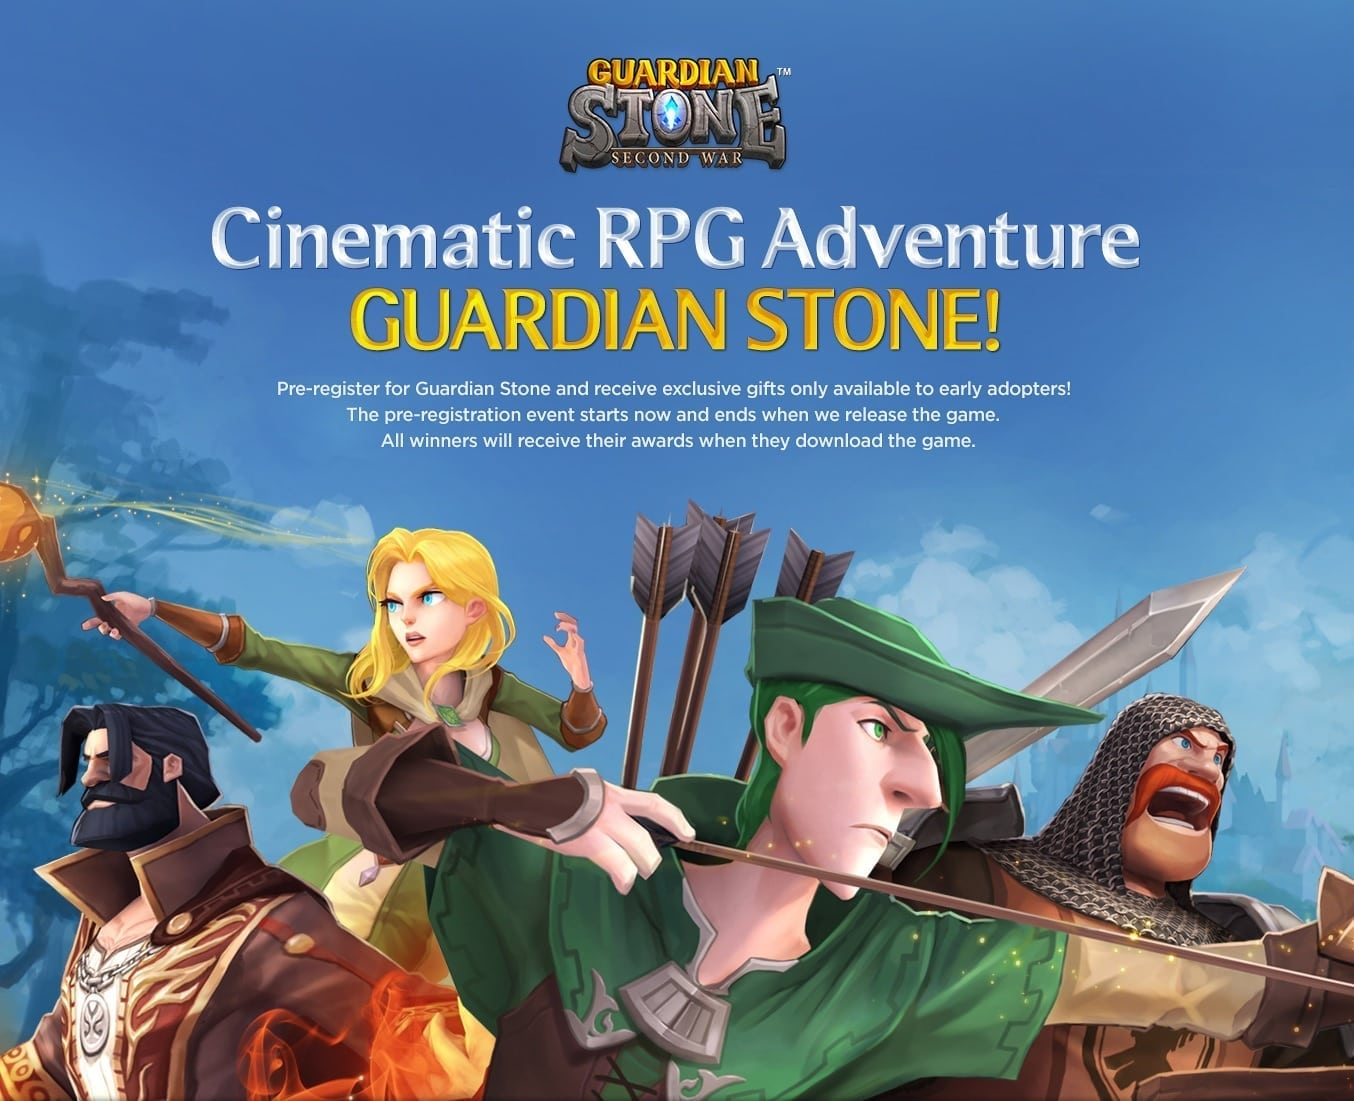 Guardian Stone pre-register image